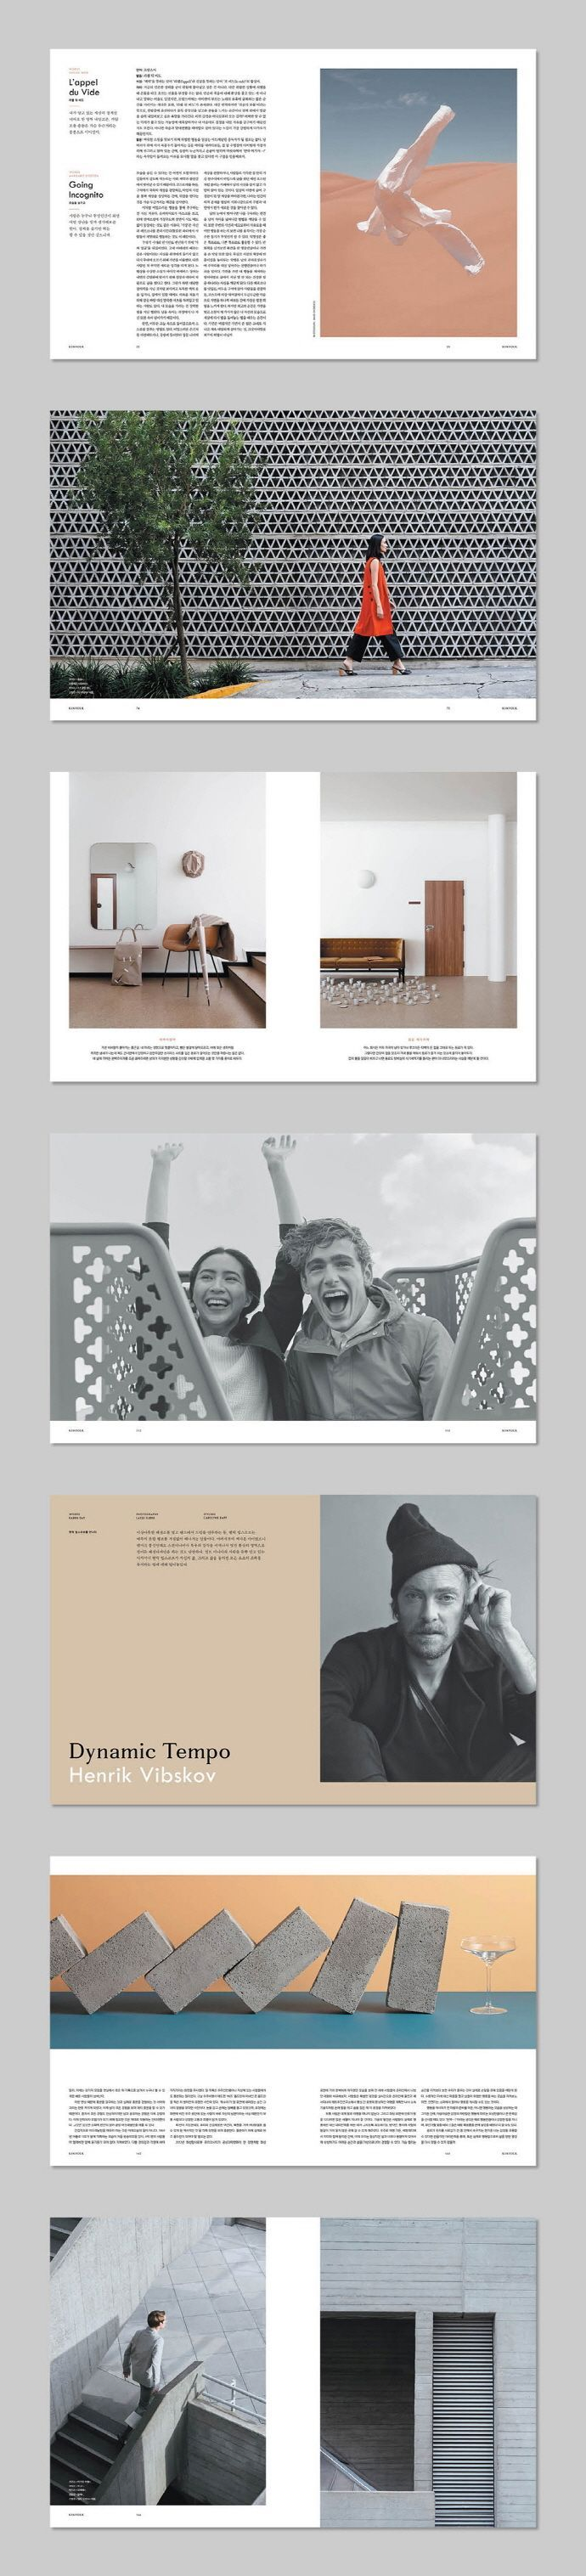 킨포크 KINFOLK - Simple layout design Inspiration